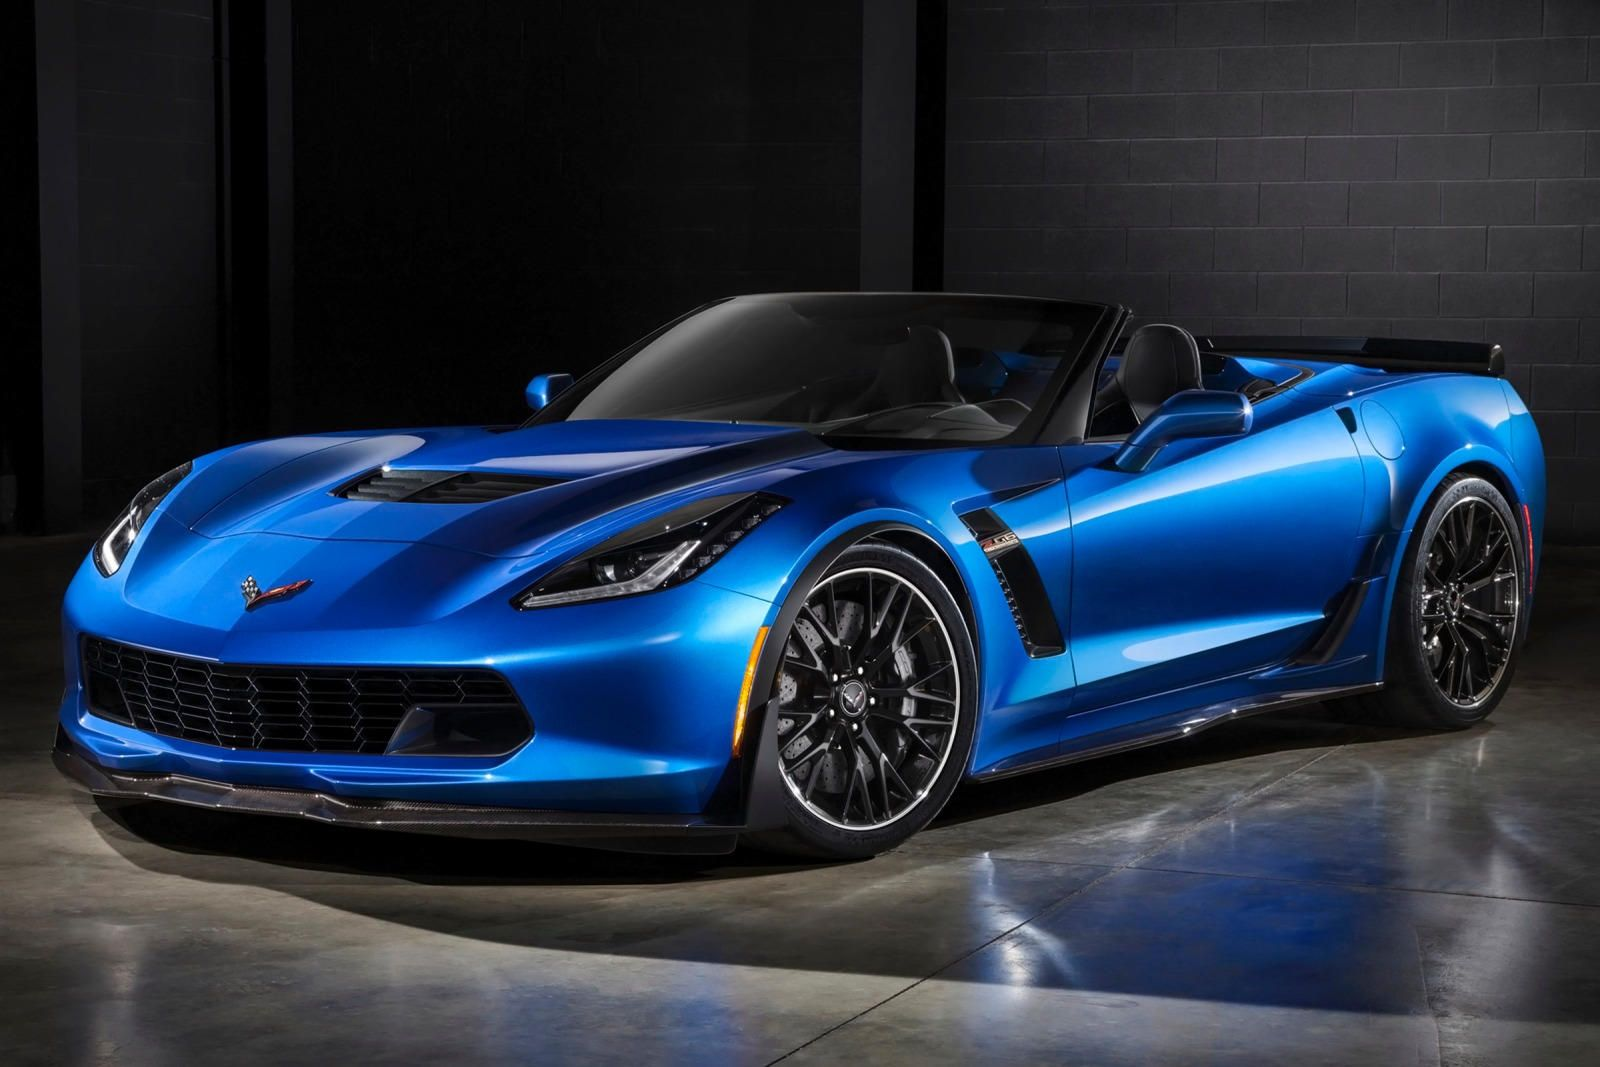 Image Result For 2018 Blue Corvette Convertible Chevy Corvette